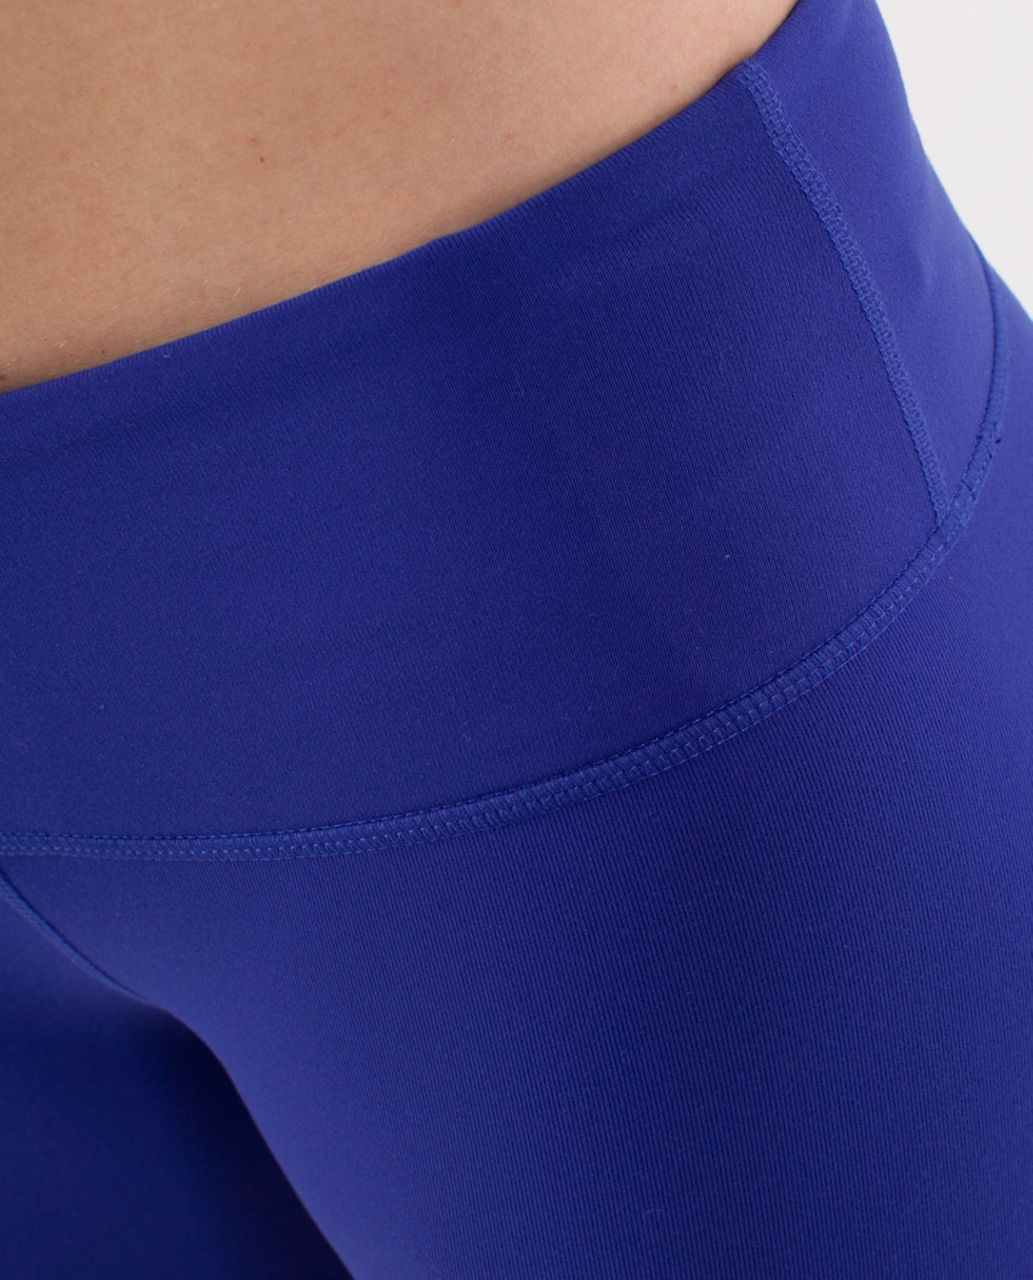 Lululemon Wunder Under Crop - Pigment Blue